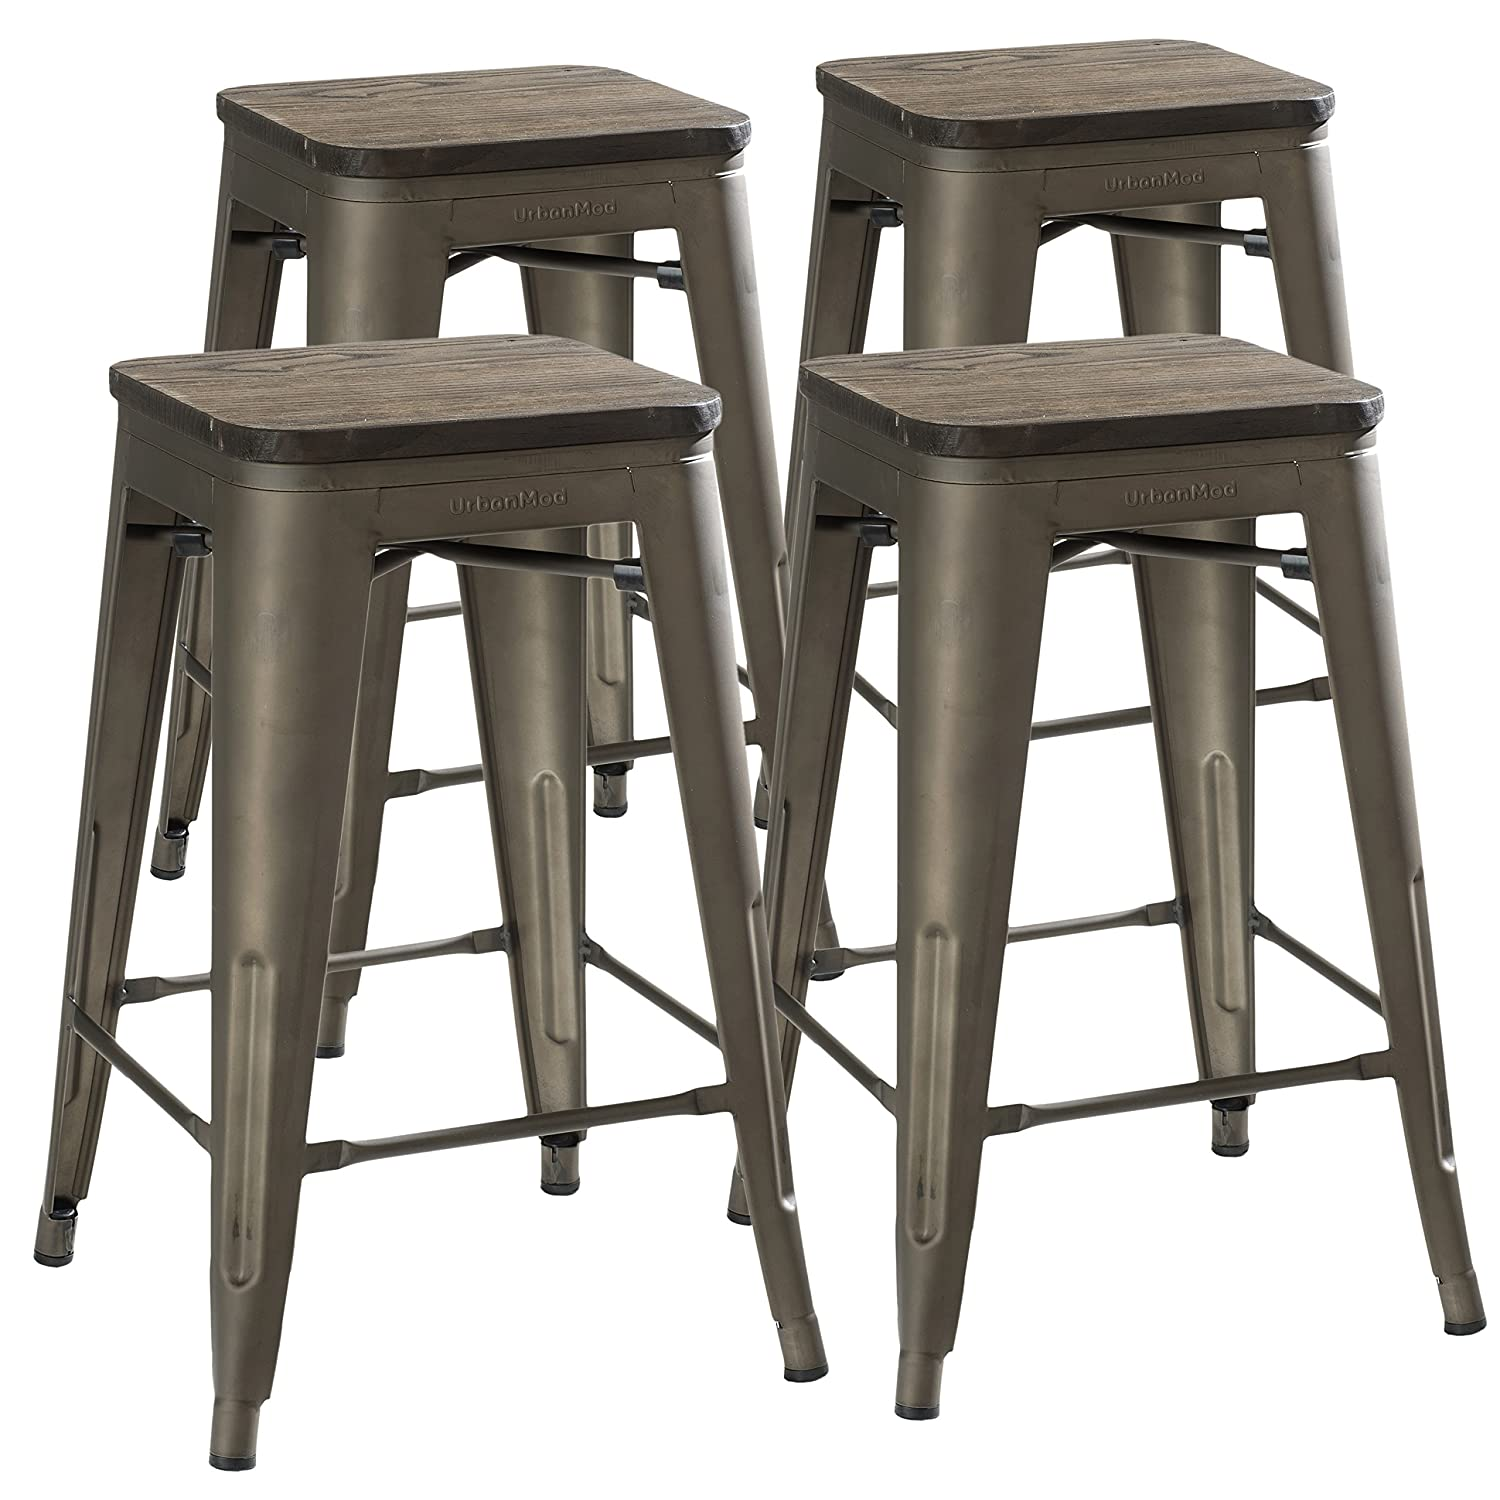 Superb Details About Urbanmod 24 Counter Height Bar Stools Rustic Gunmetal Wooden Seat By Pdpeps Interior Chair Design Pdpepsorg